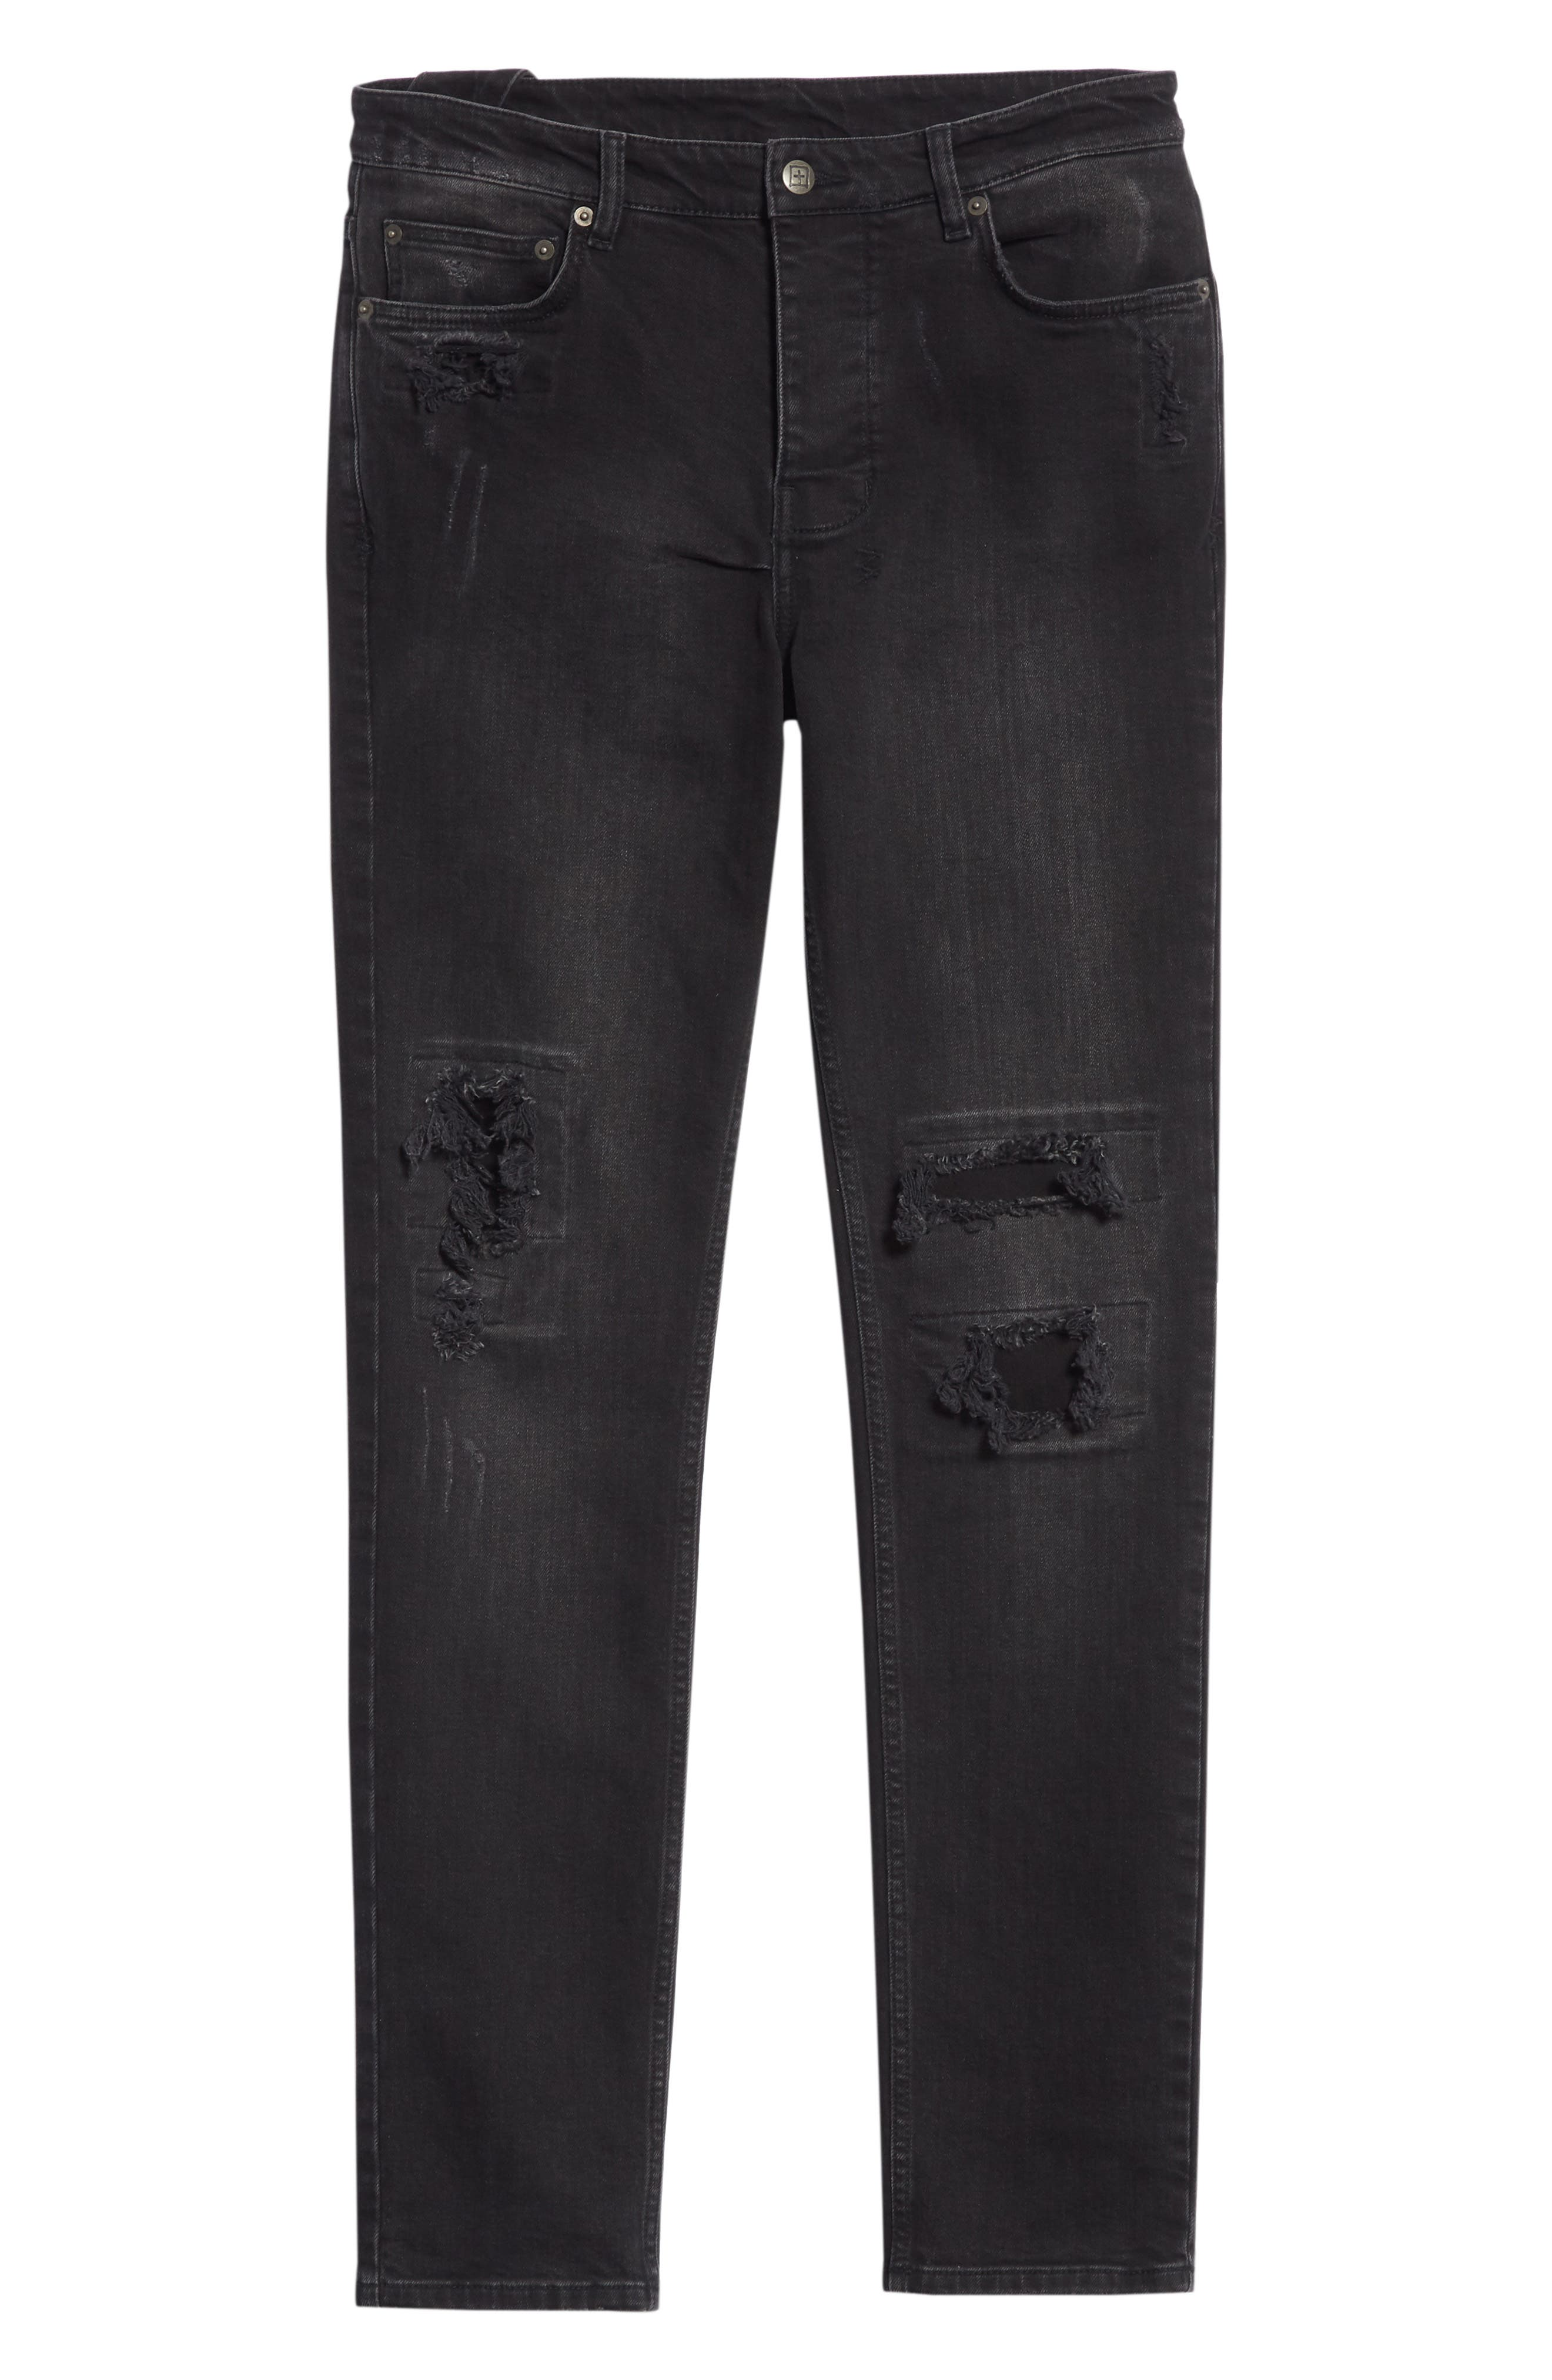 Chitch Boneyard Skinny Fit Jeans,                             Alternate thumbnail 6, color,                             BLACK